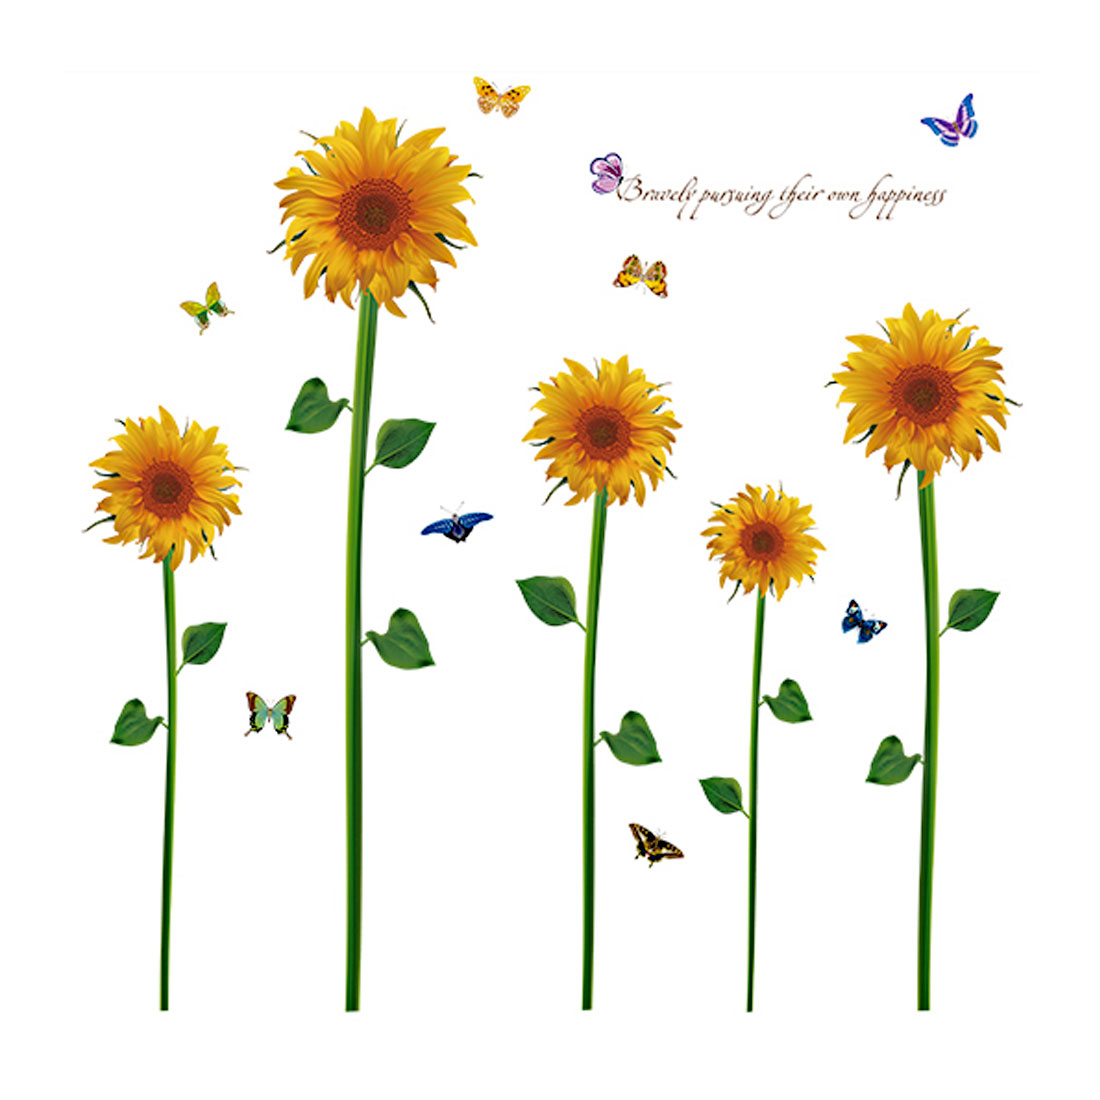 Living Room PVC Sunflower Print Removable Wall Sticker Decal 90 x 60cm